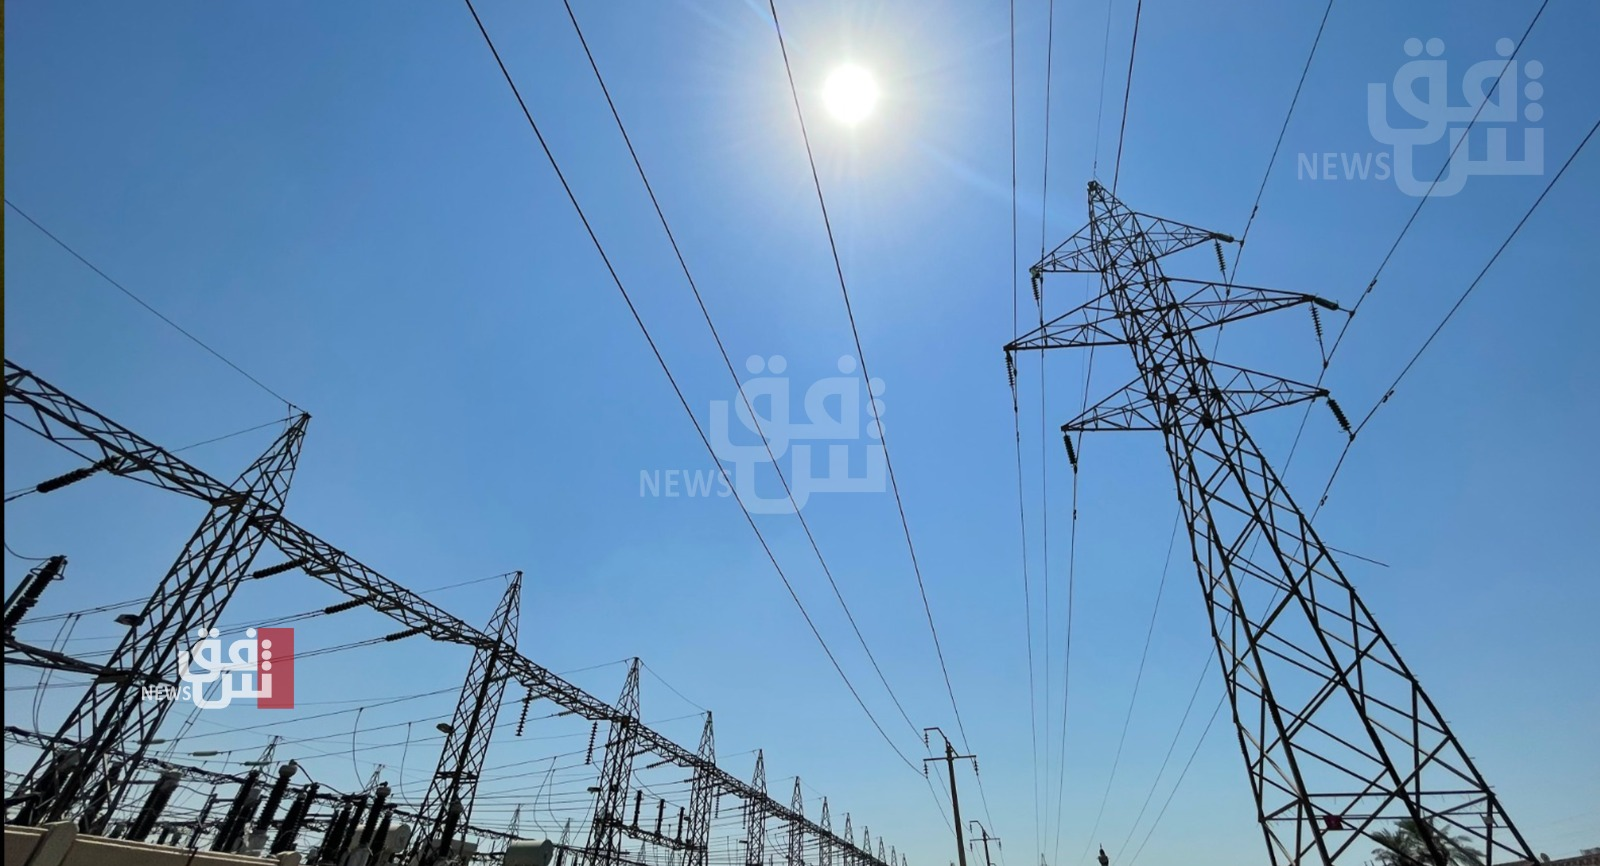 ISIS attacks a village in Nineveh, blows up transmission towers in Saladin